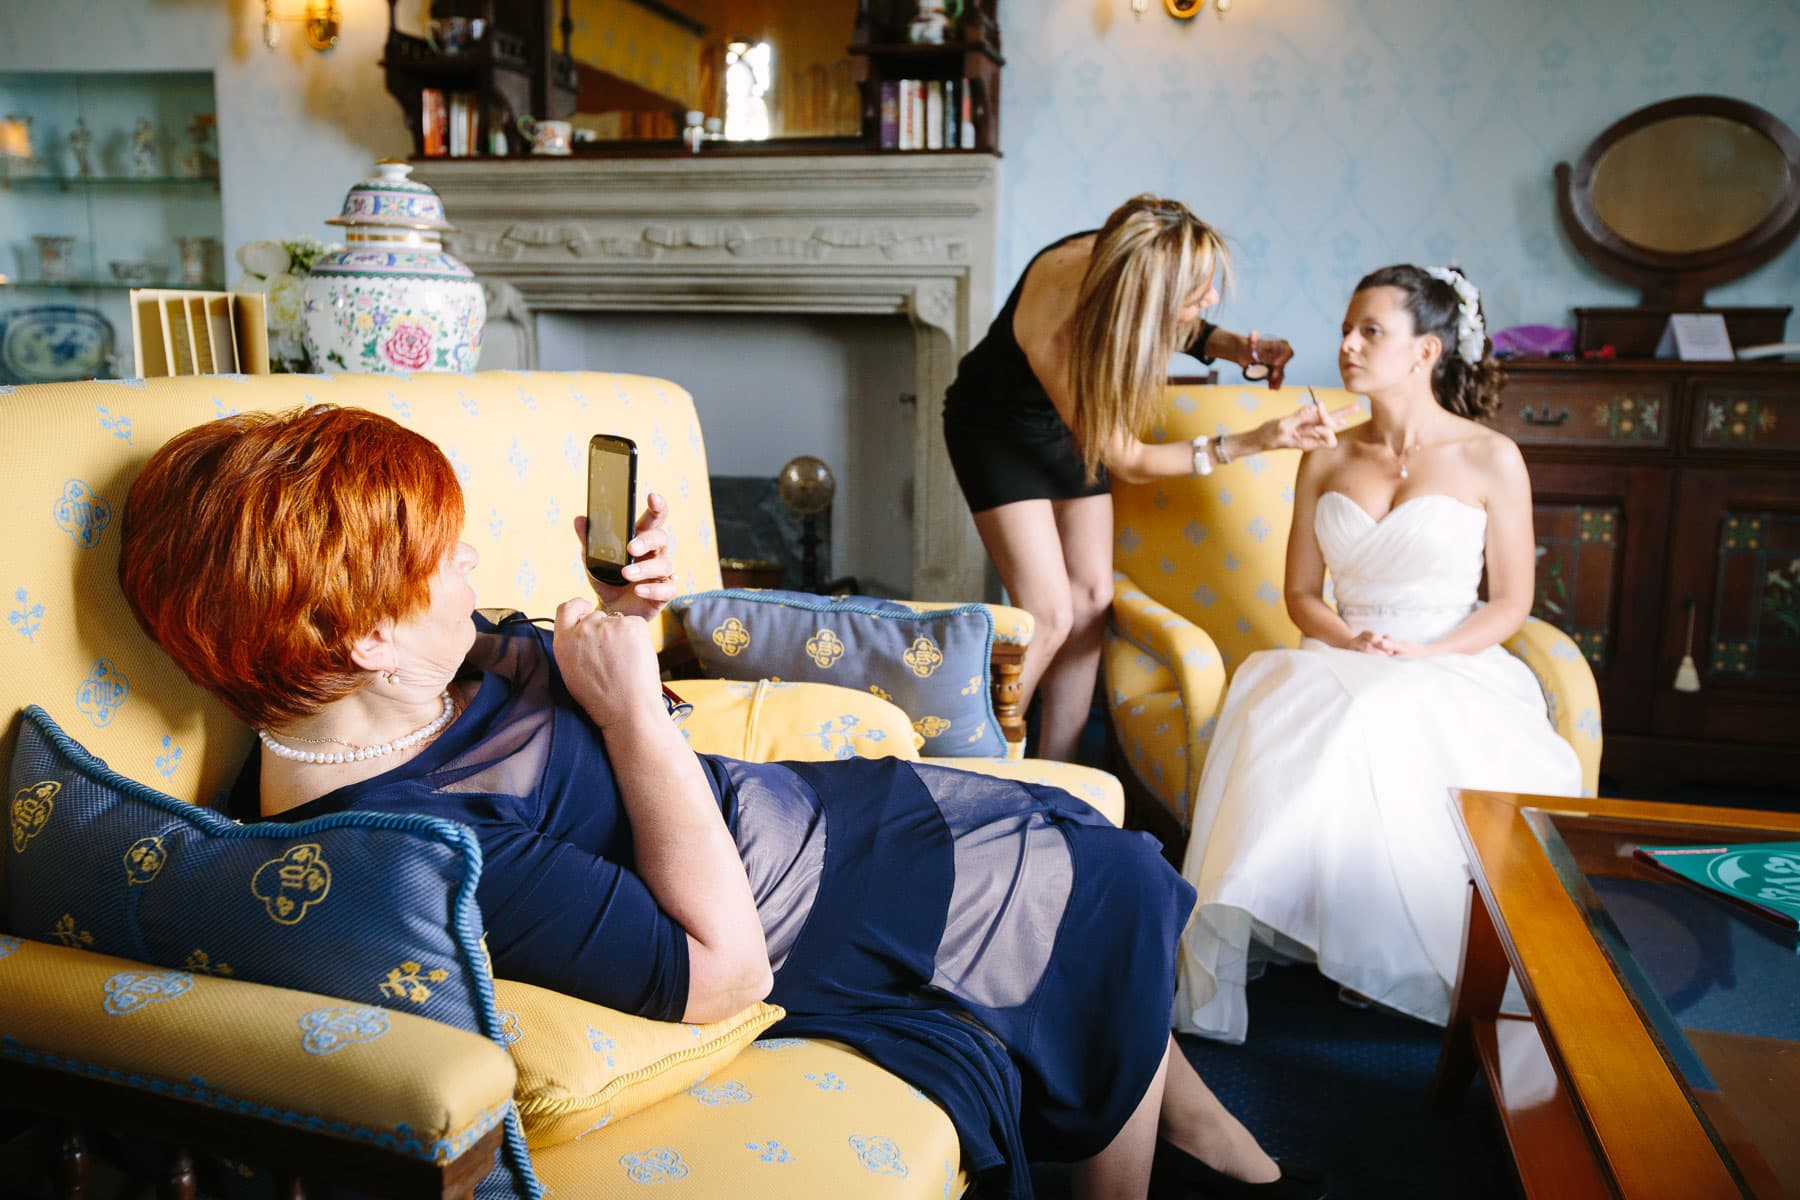 The bride's mother snaps a photo from the cough of bride getting her makeup applied in this Italian destination wedding in Castello Dal Pozzo.